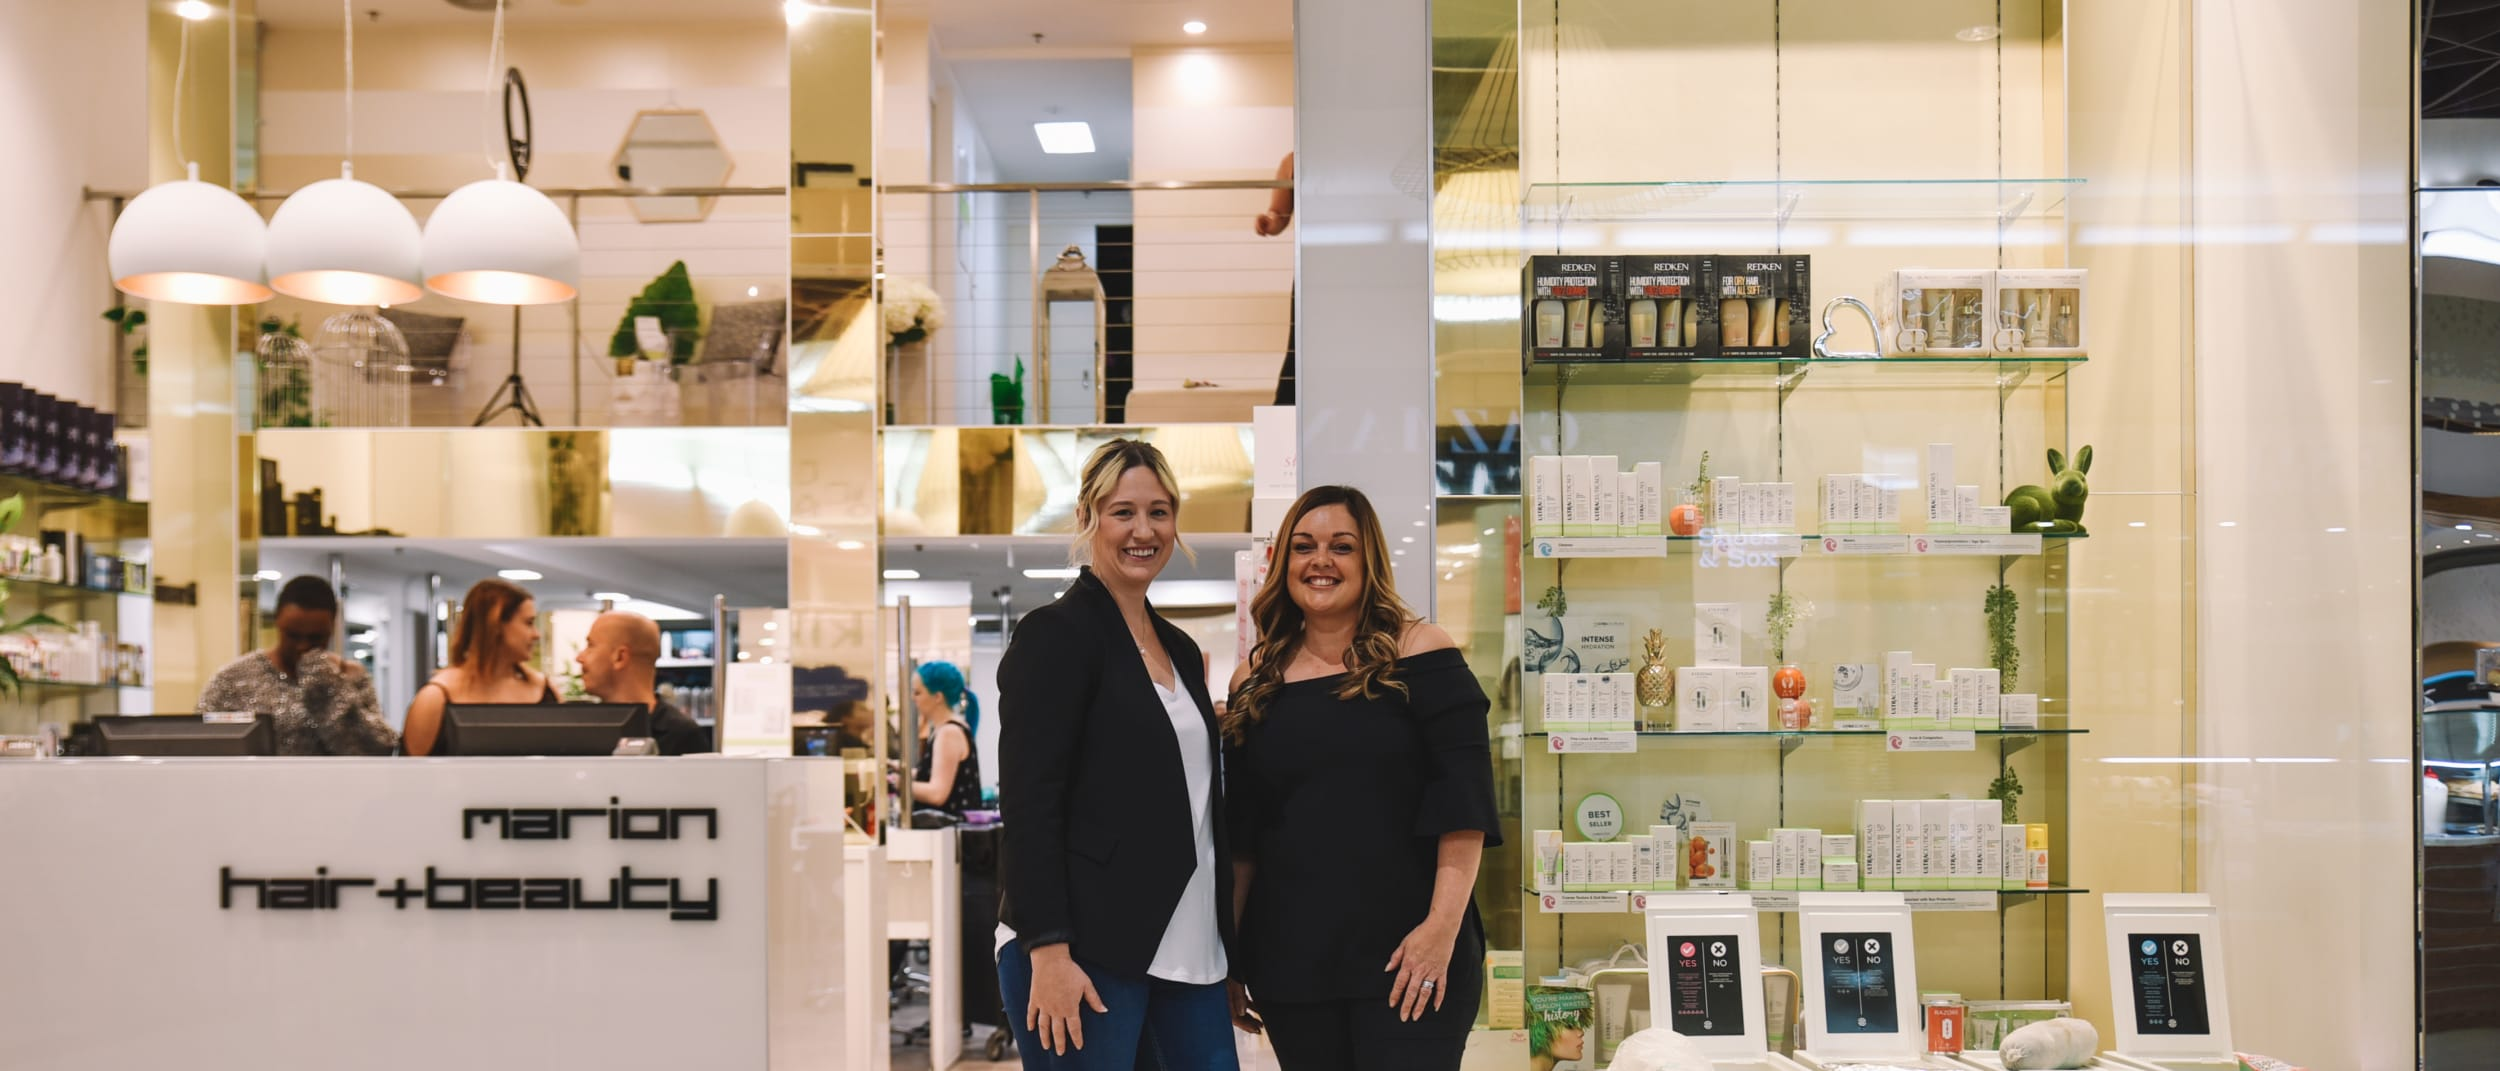 Marion Hair & Beauty: we're simply the best